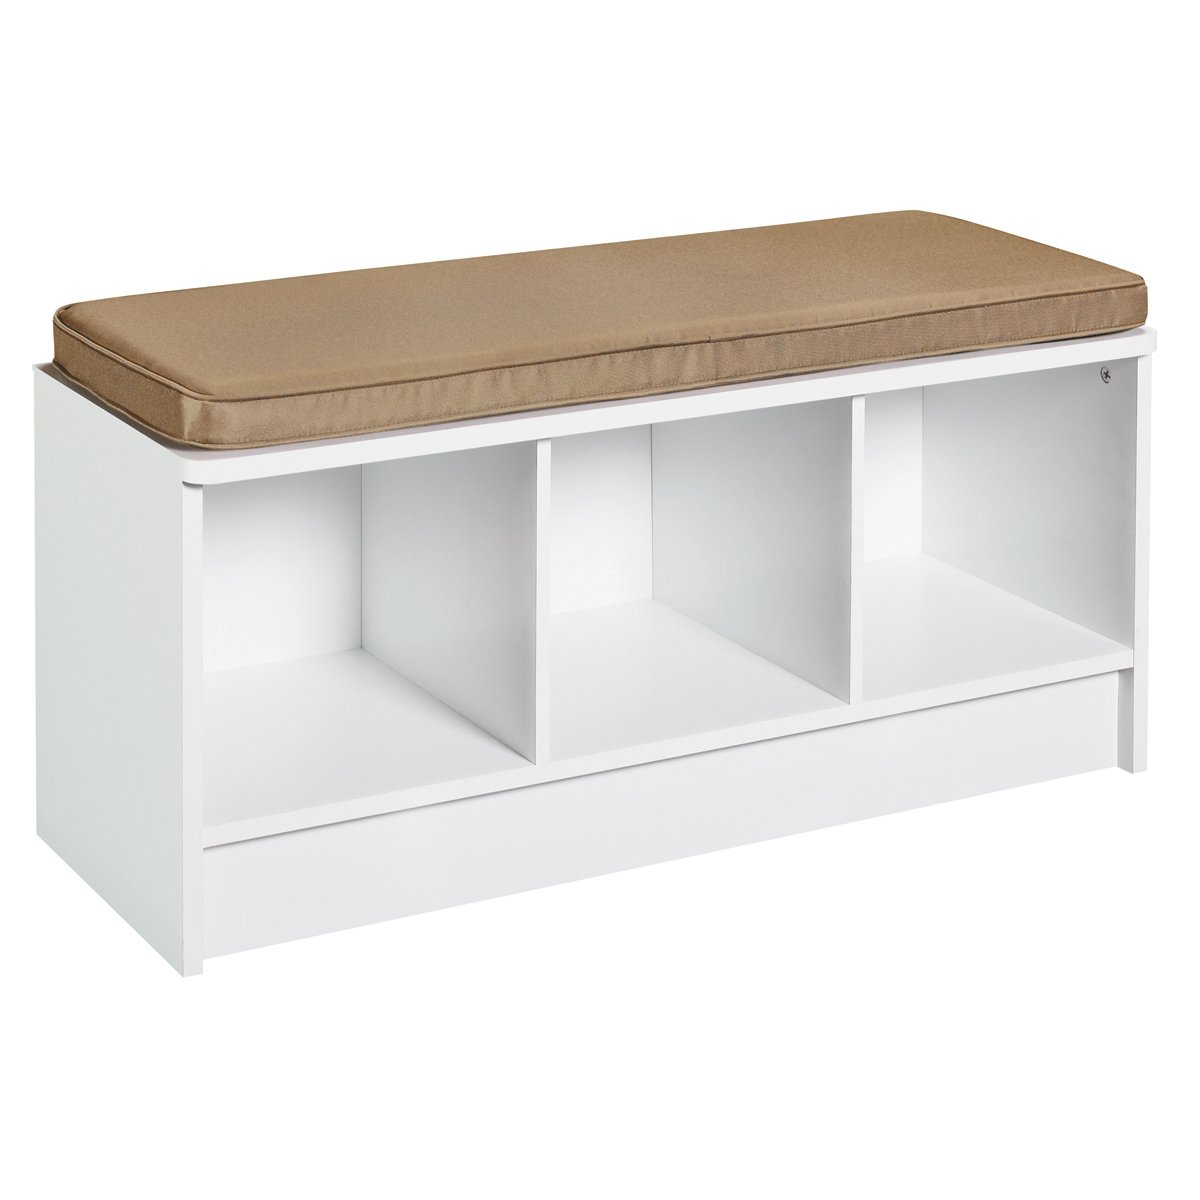 Entryway 3 cube storage bench white organization furniture hallway window seat ebay Storage benches